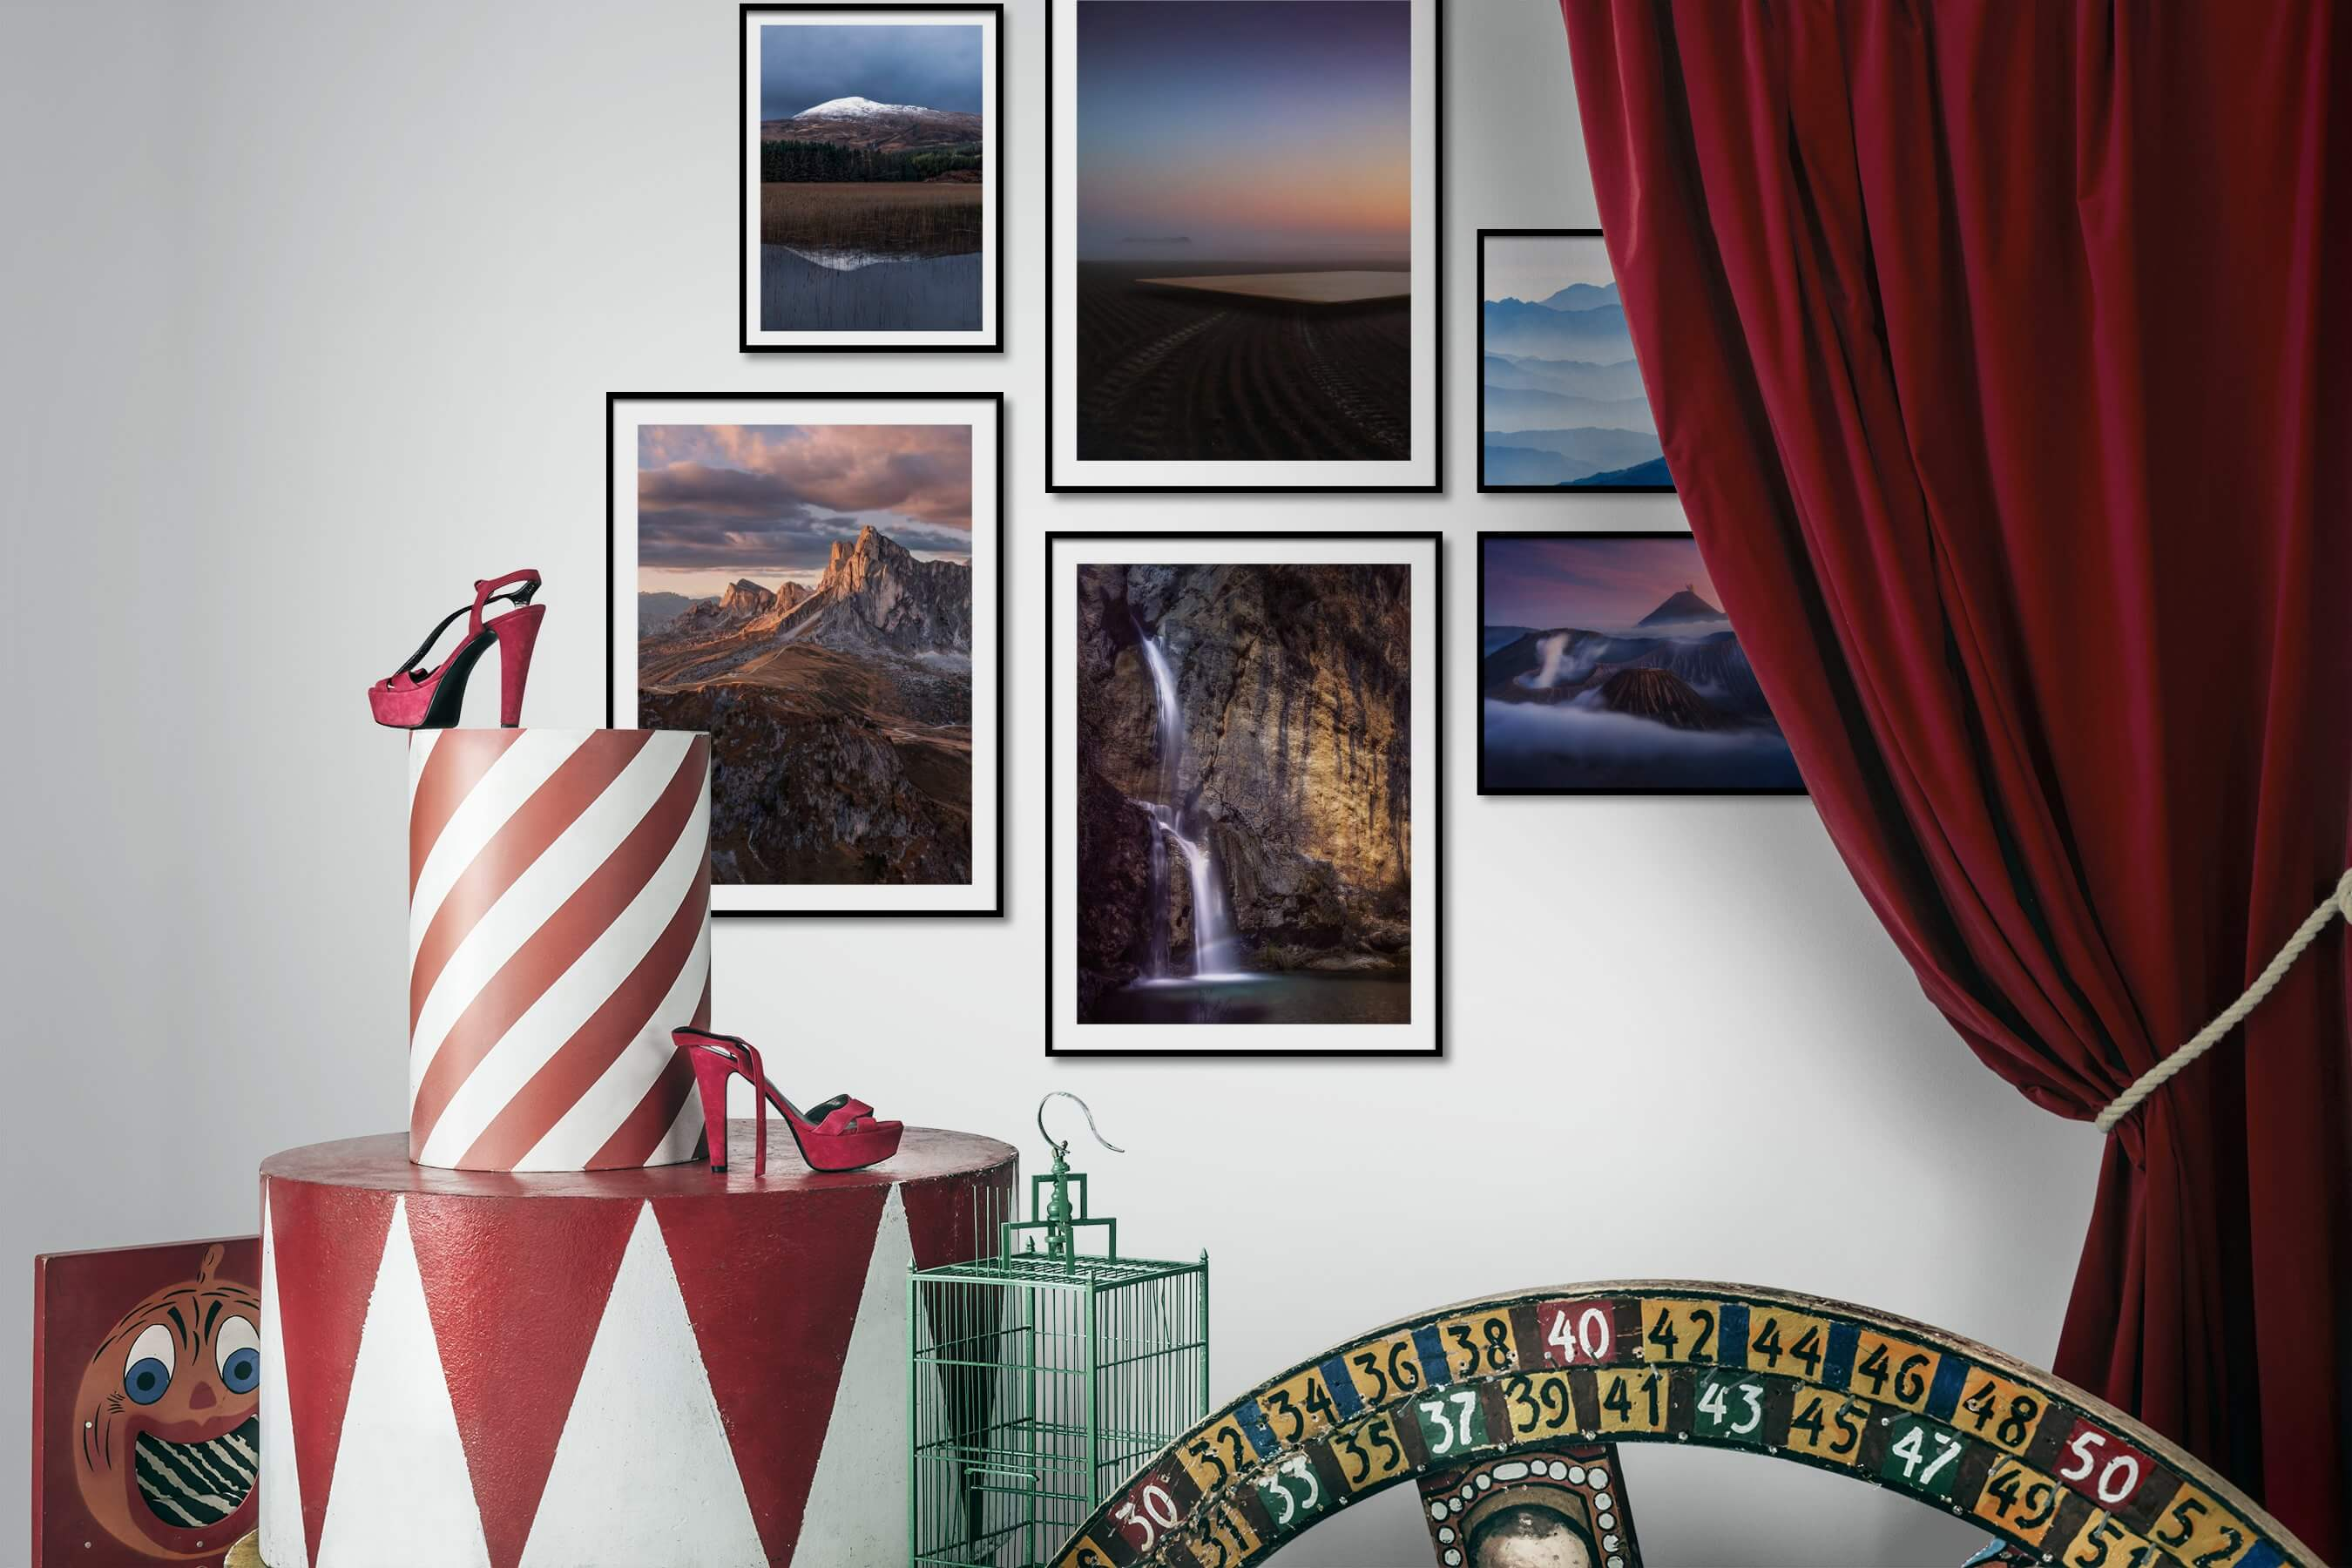 Gallery wall idea with six framed pictures arranged on a wall depicting Nature, Artsy, For the Minimalist, For the Moderate, and Mindfulness